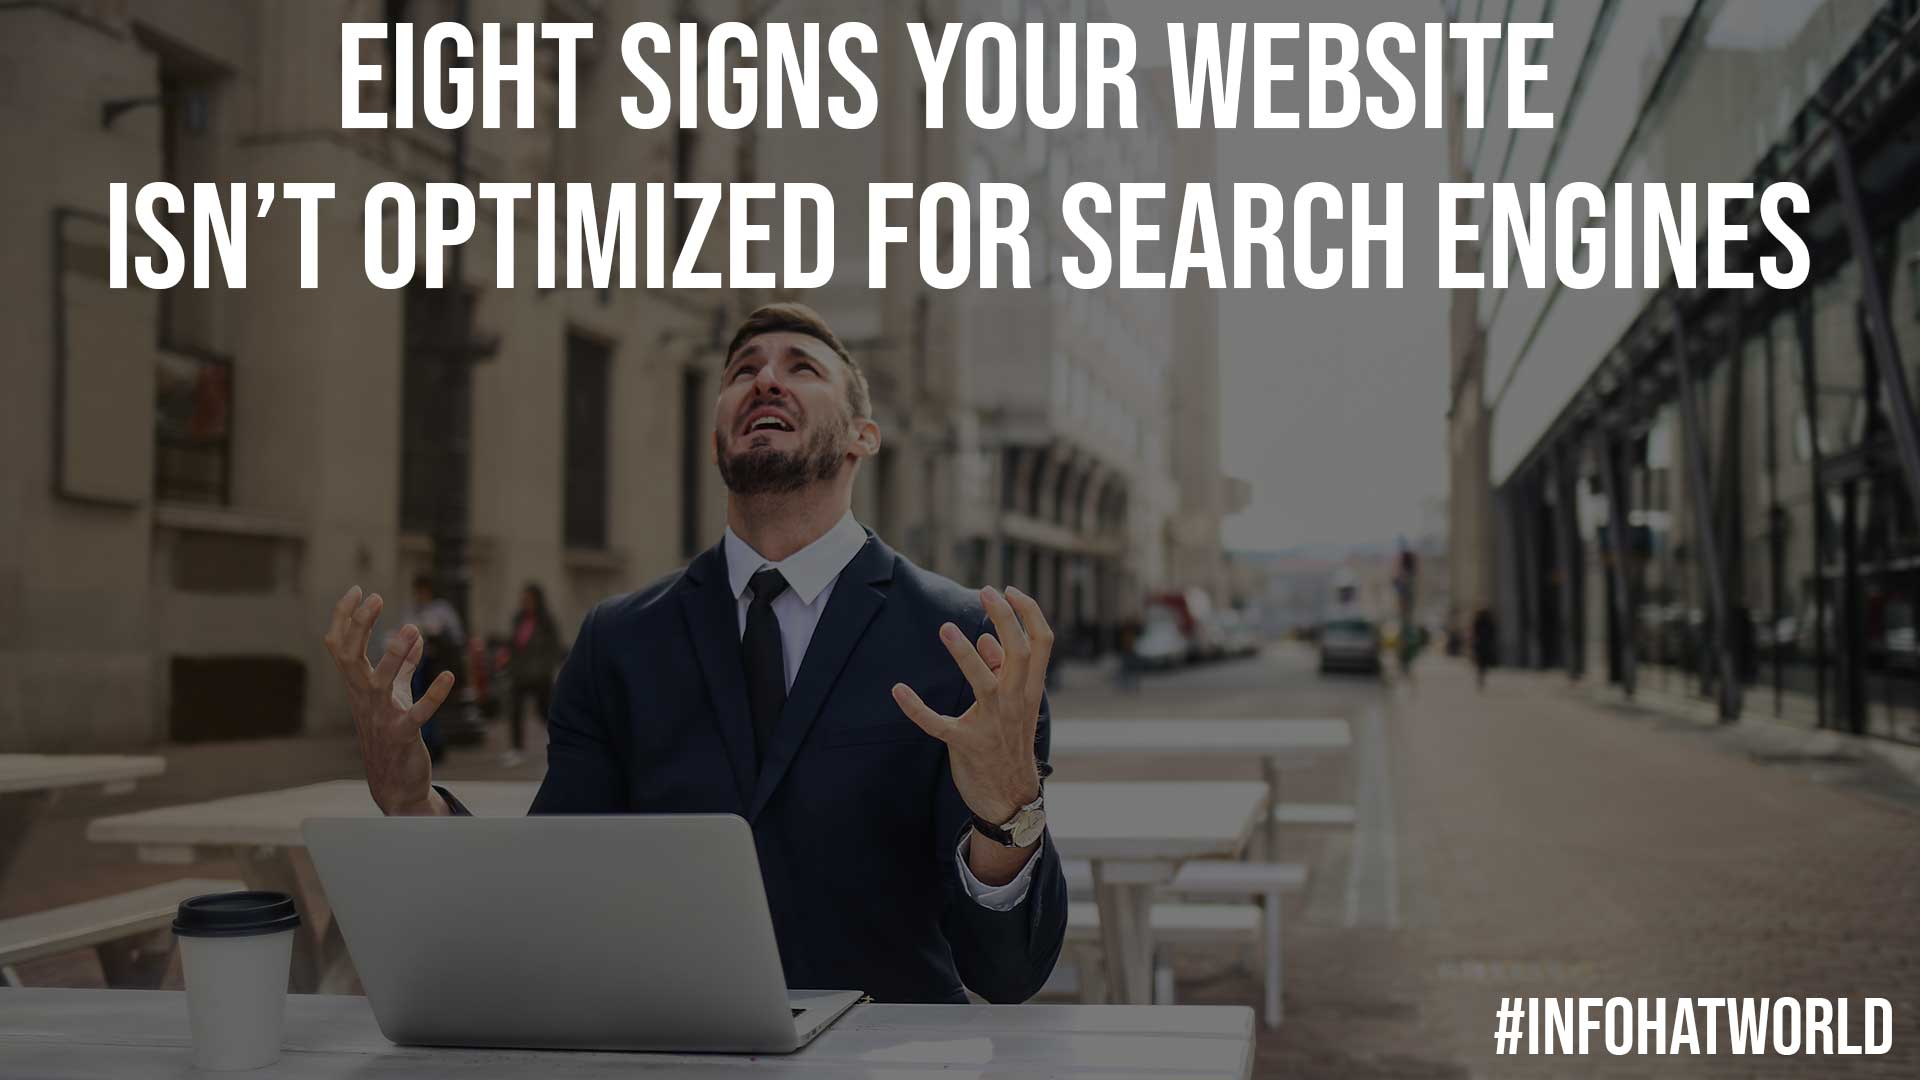 Eight Signs Your Website Isnt Optimized For Search Engines